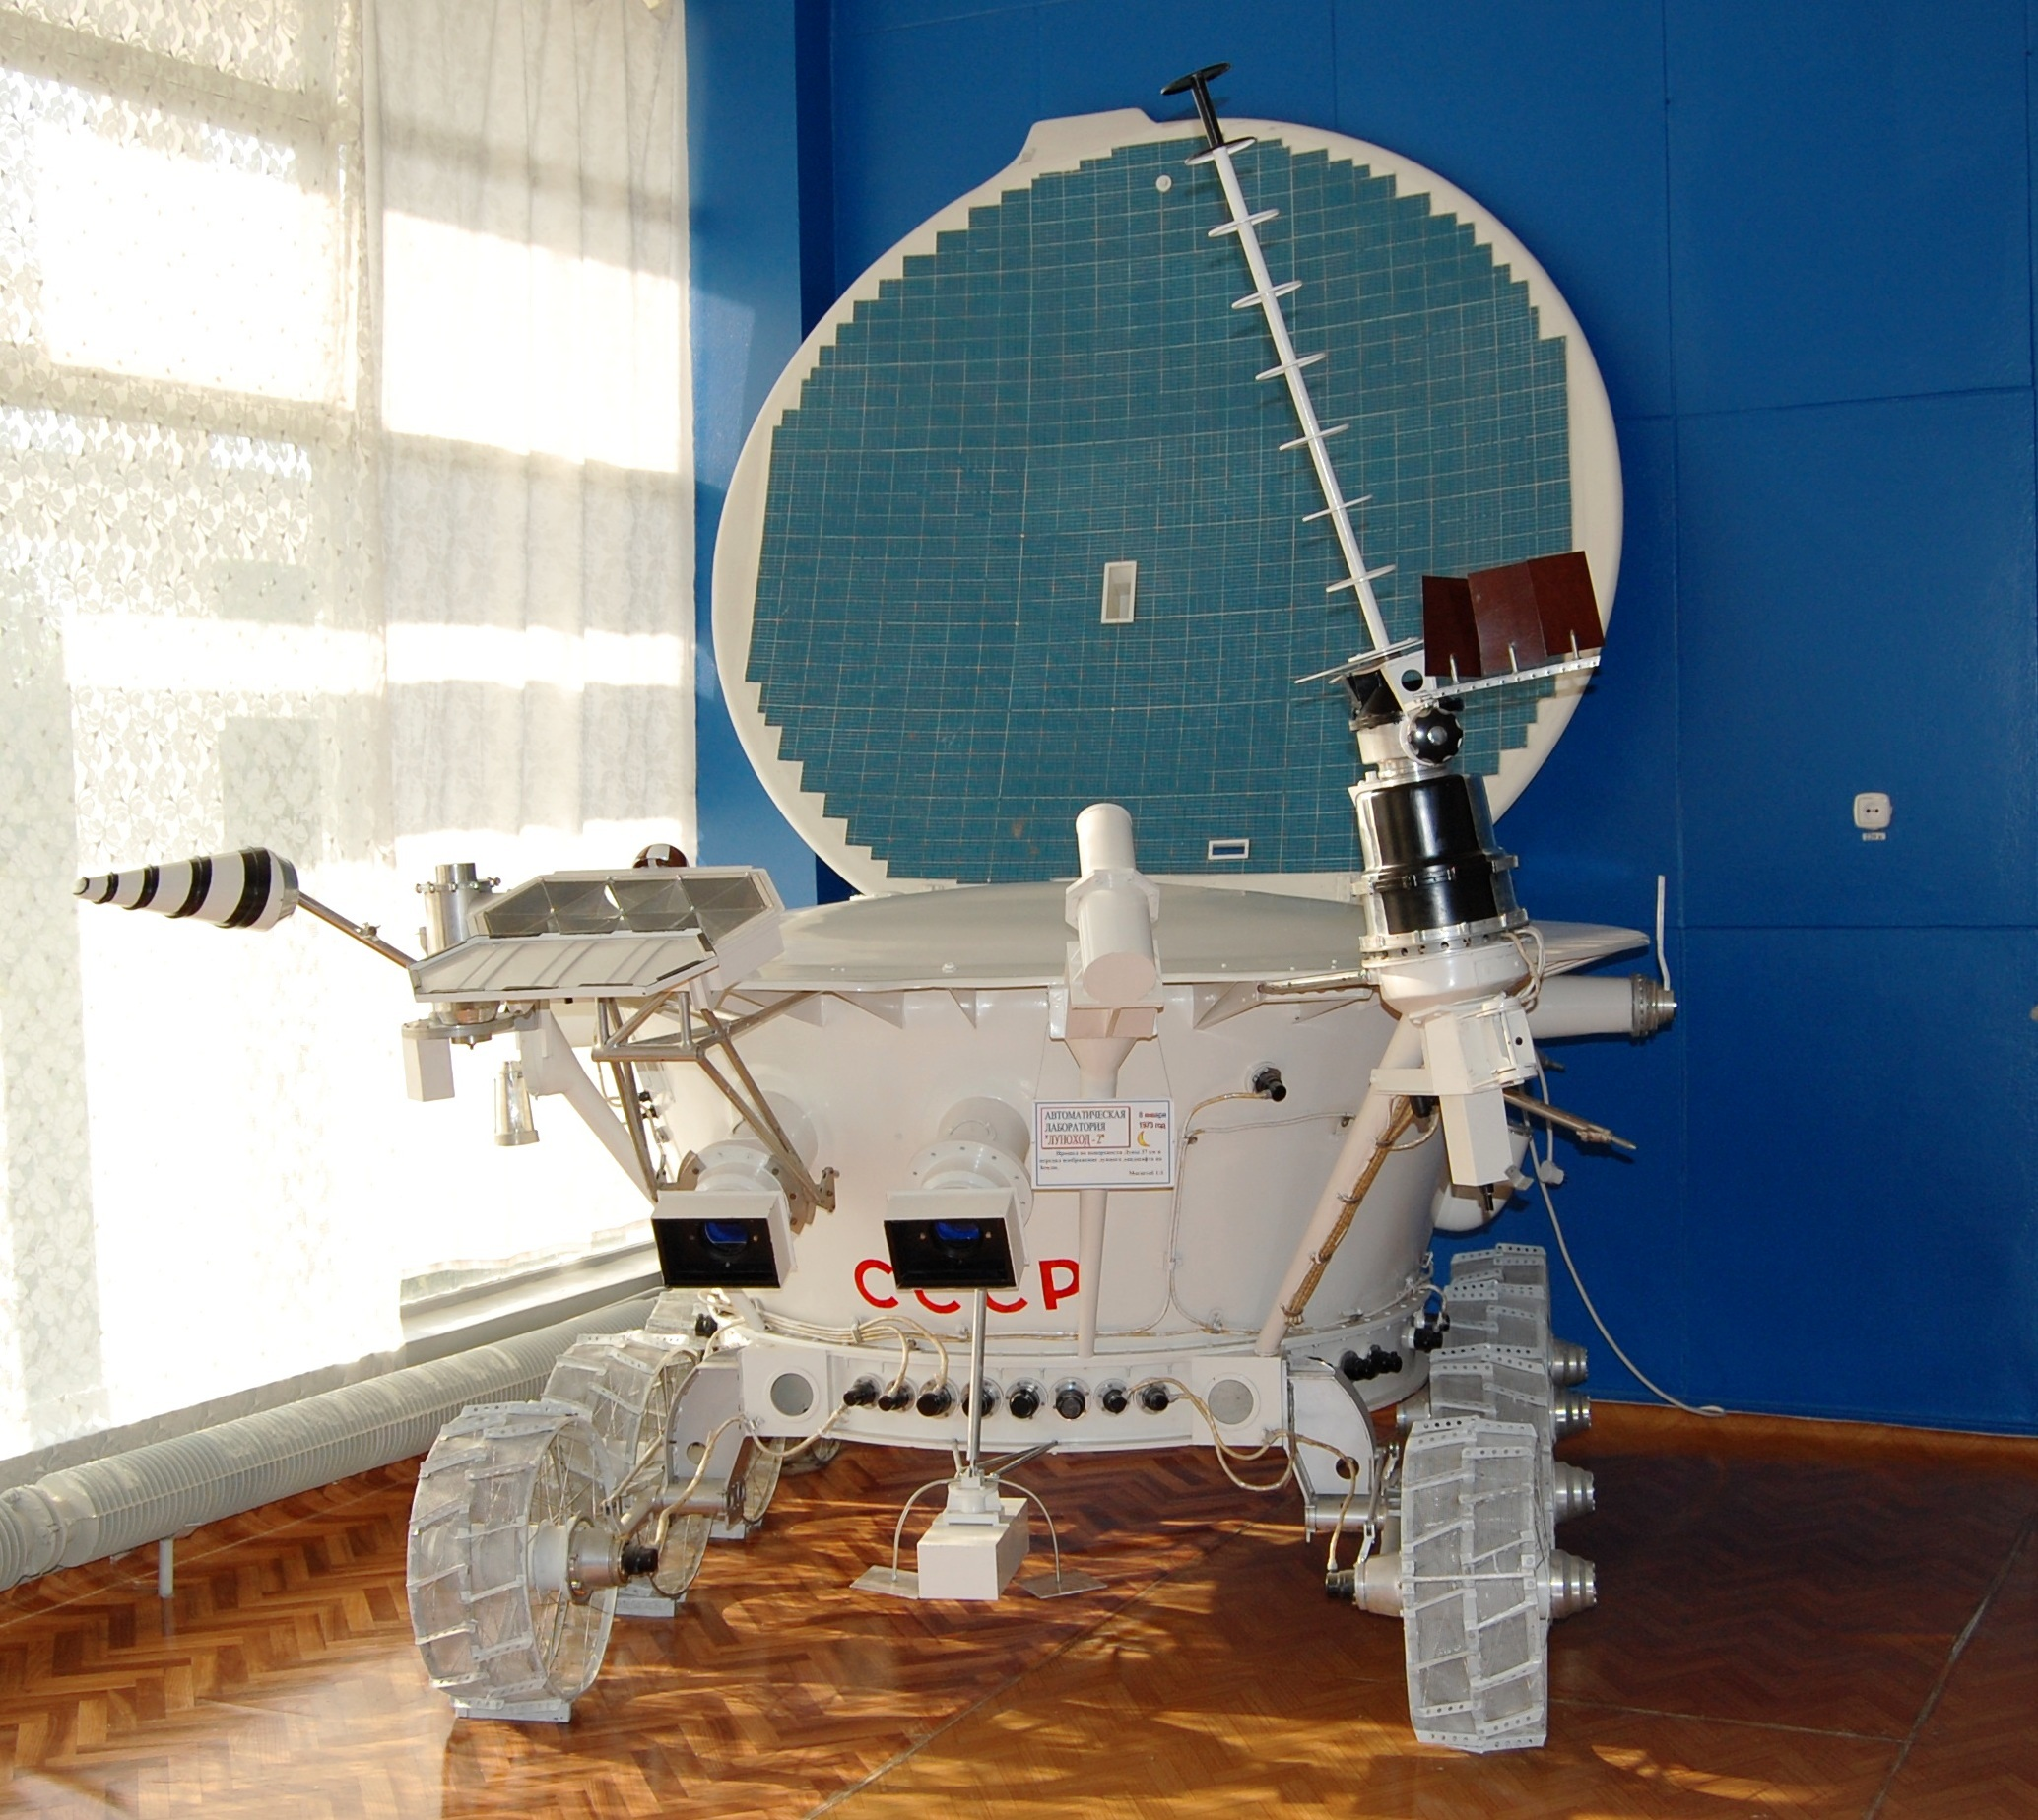 Lunokhod 2 Moon Rover Model (page 4) - Pics about space